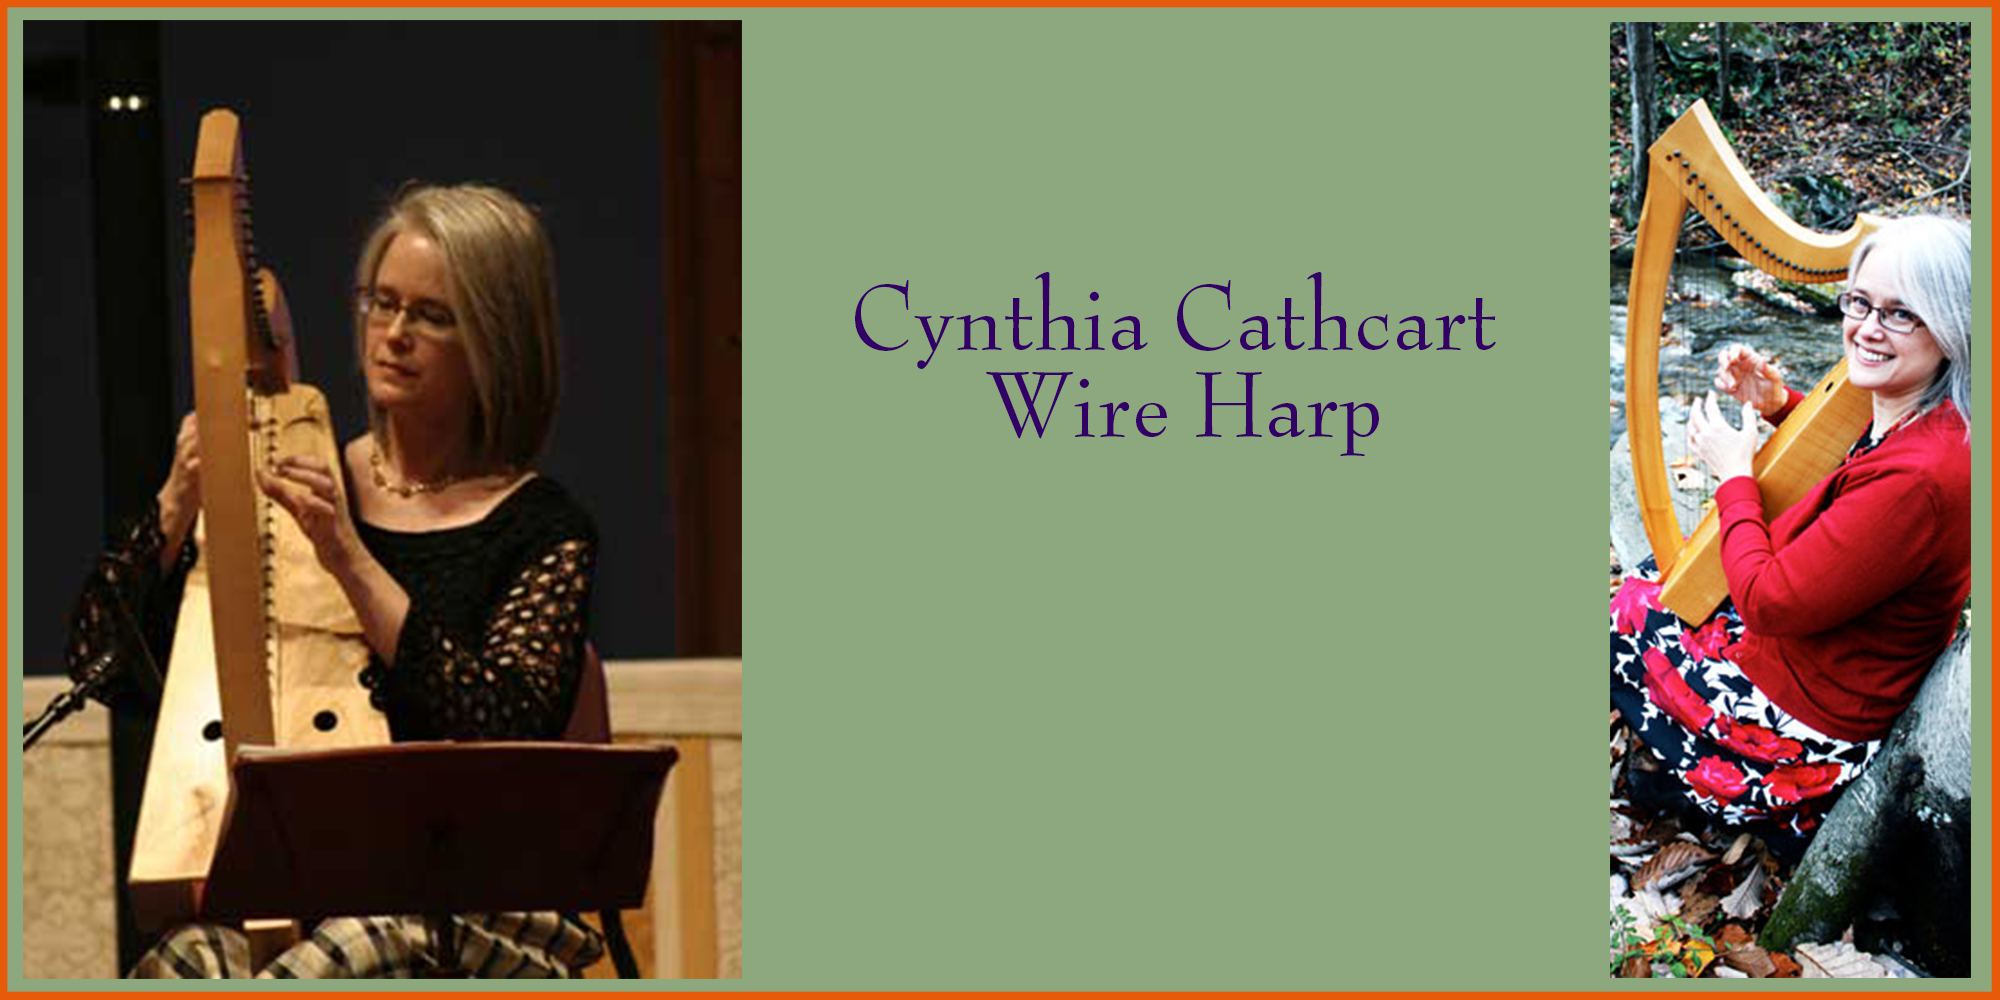 Cynthia Cathcart on Wire Harp